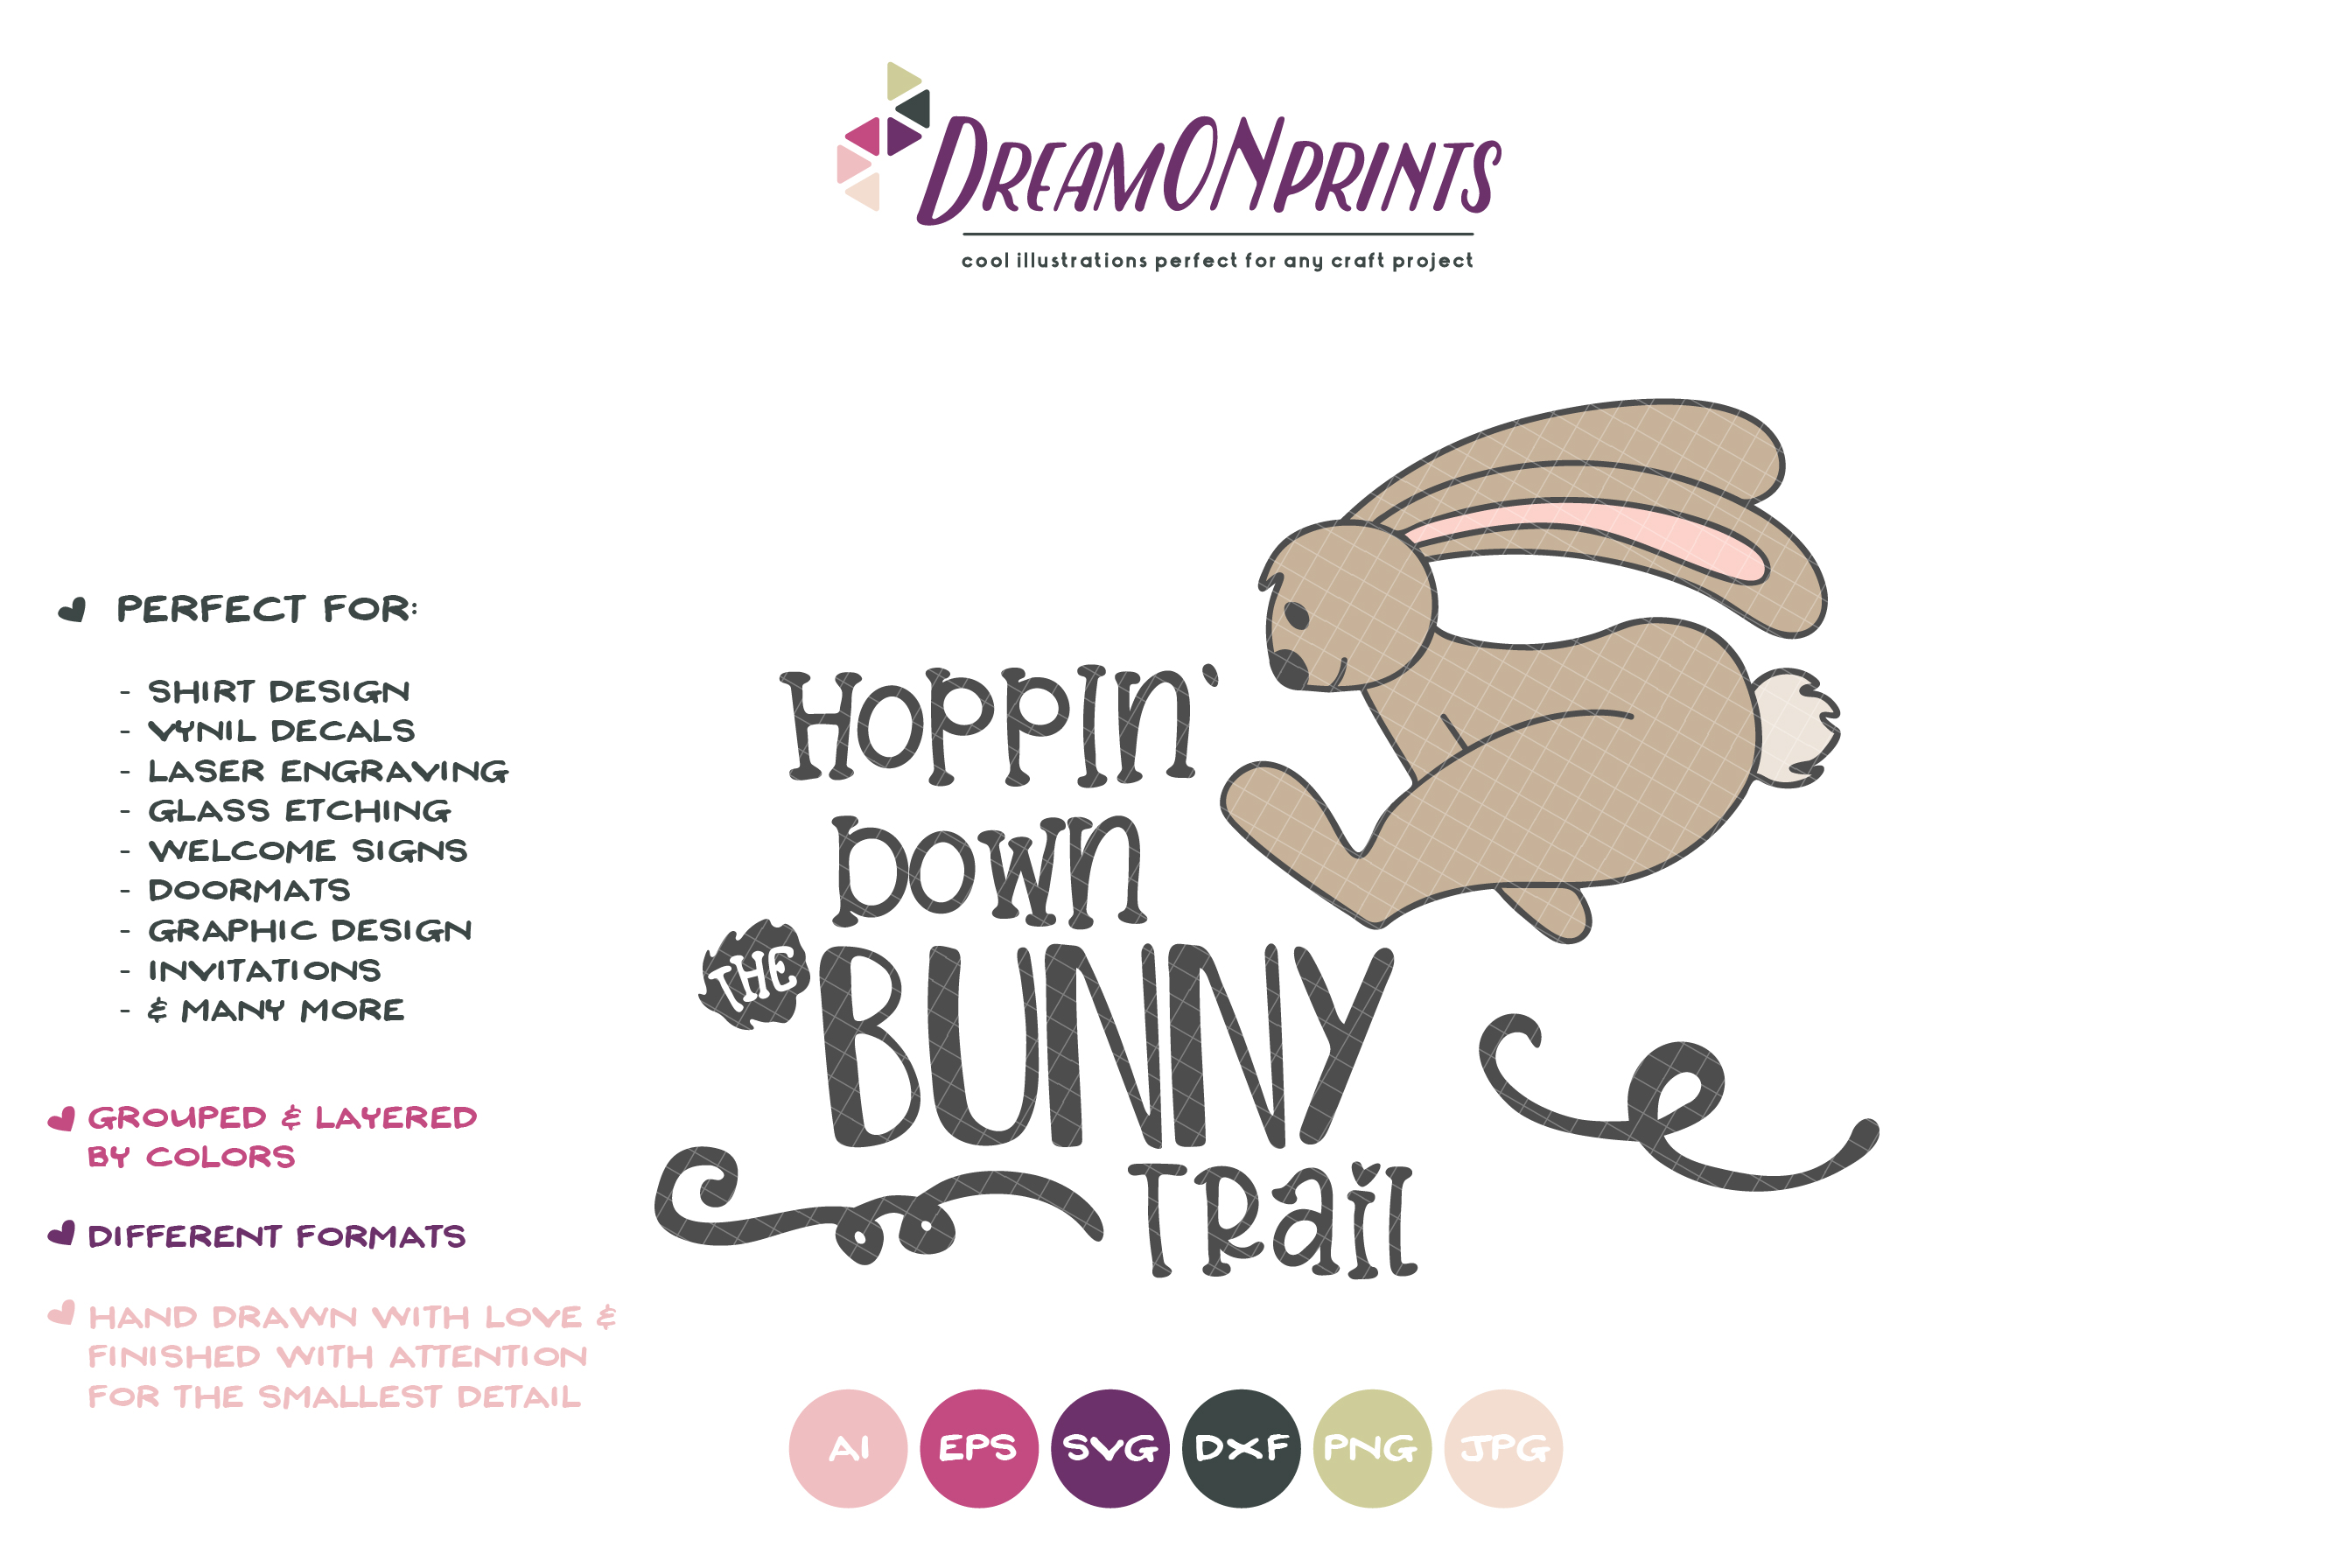 Hopping Down the Bunny Trail SVG - Funny Easter SVG example image 2